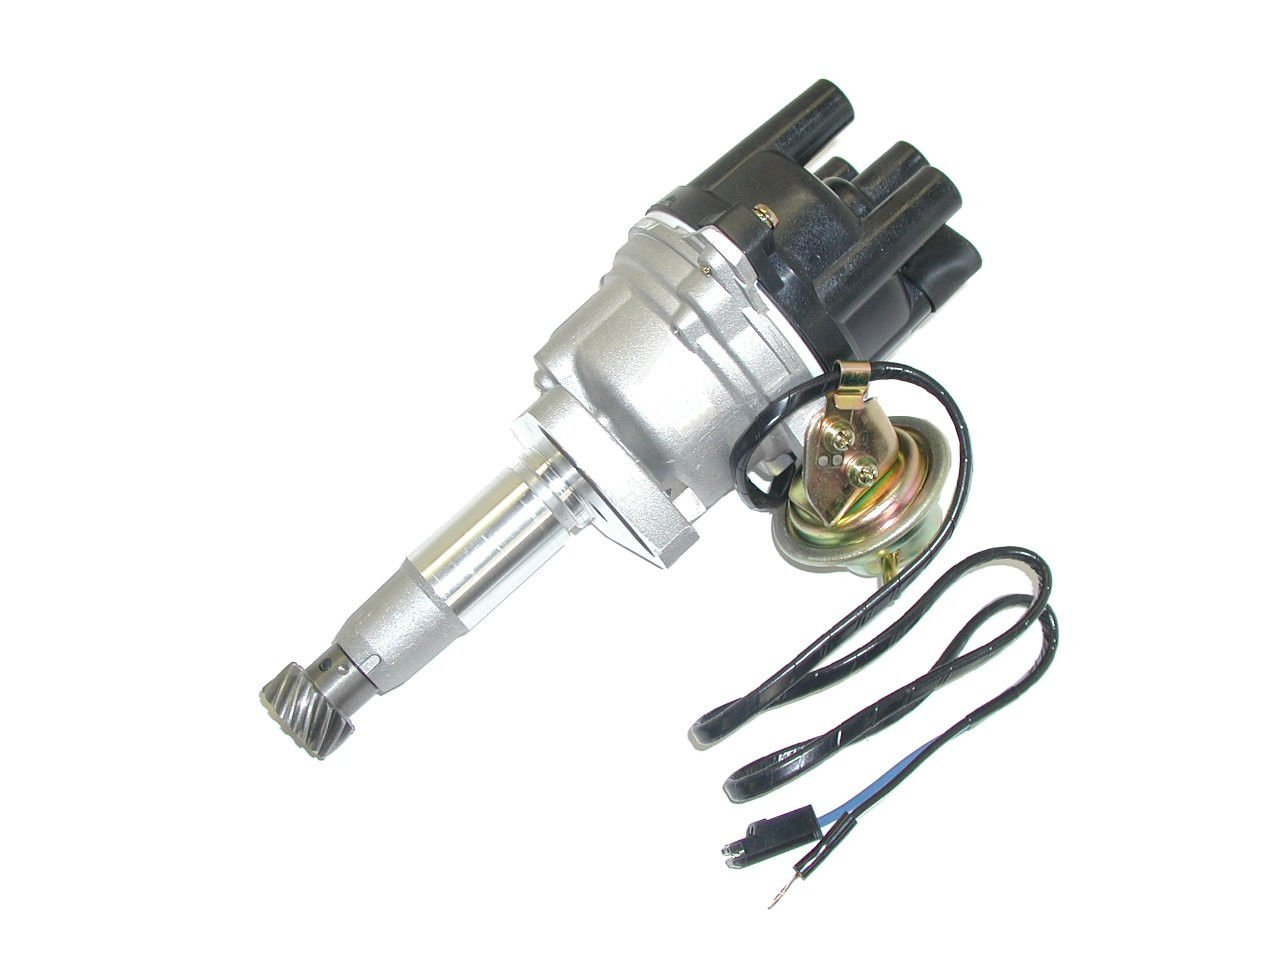 New Yale Forklift Parts Water Pump PN 520046839